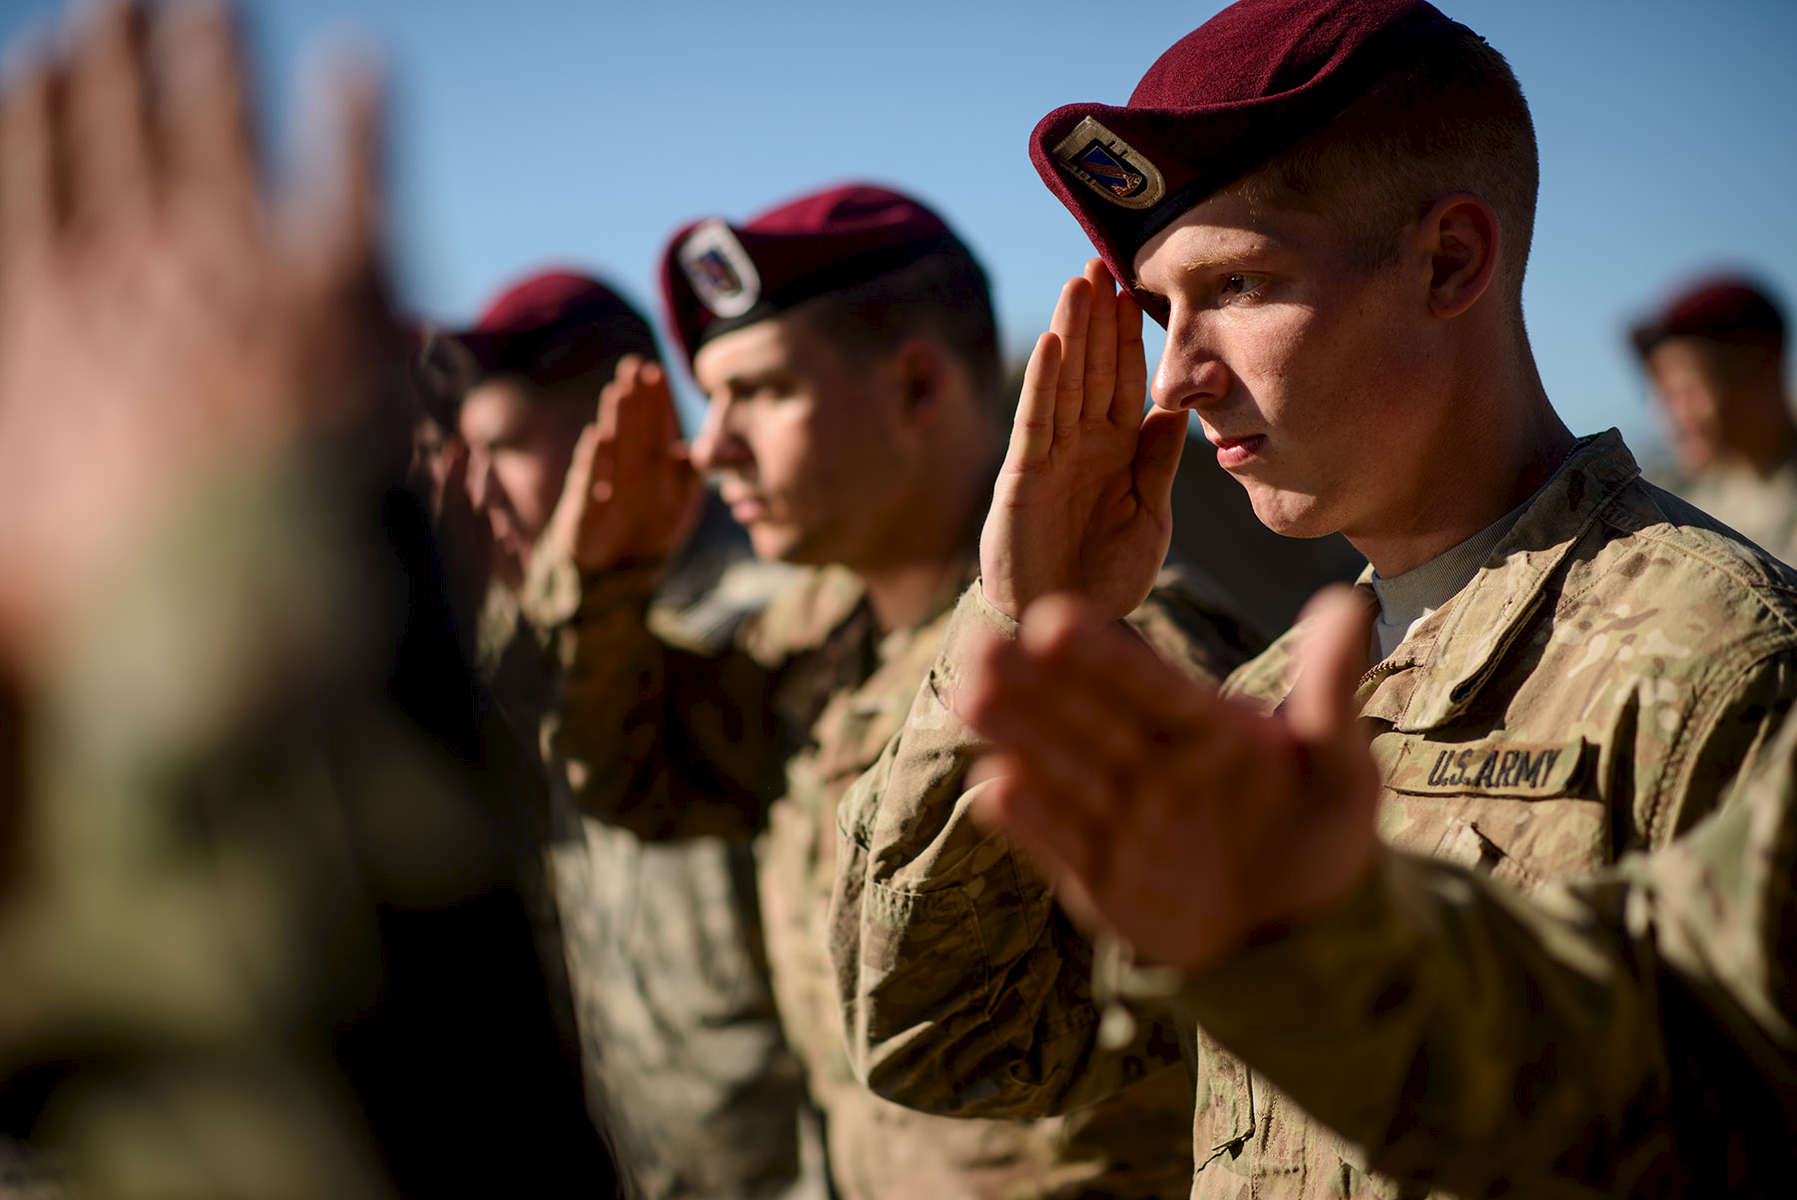 First Place | Multiple PhotosAndrew Craft, The Fayetteville ObserverParatroopers with the 2nd Brigade Combat Team, salute Spanish soldiers as they receive their Spanish jump wings Friday, Nov. 6, 2015, in Zaragoza, Spain. In support of Operations Trident Juncture 15 and Ultimate Reach 16, over 500 Paratroopers from the Division's 2nd Brigade Combat Team deployed from Pope Army Airfield, conducted in-flight rigging and executed a Joint Forcible Entry exercise in Zaragoza, Spain.